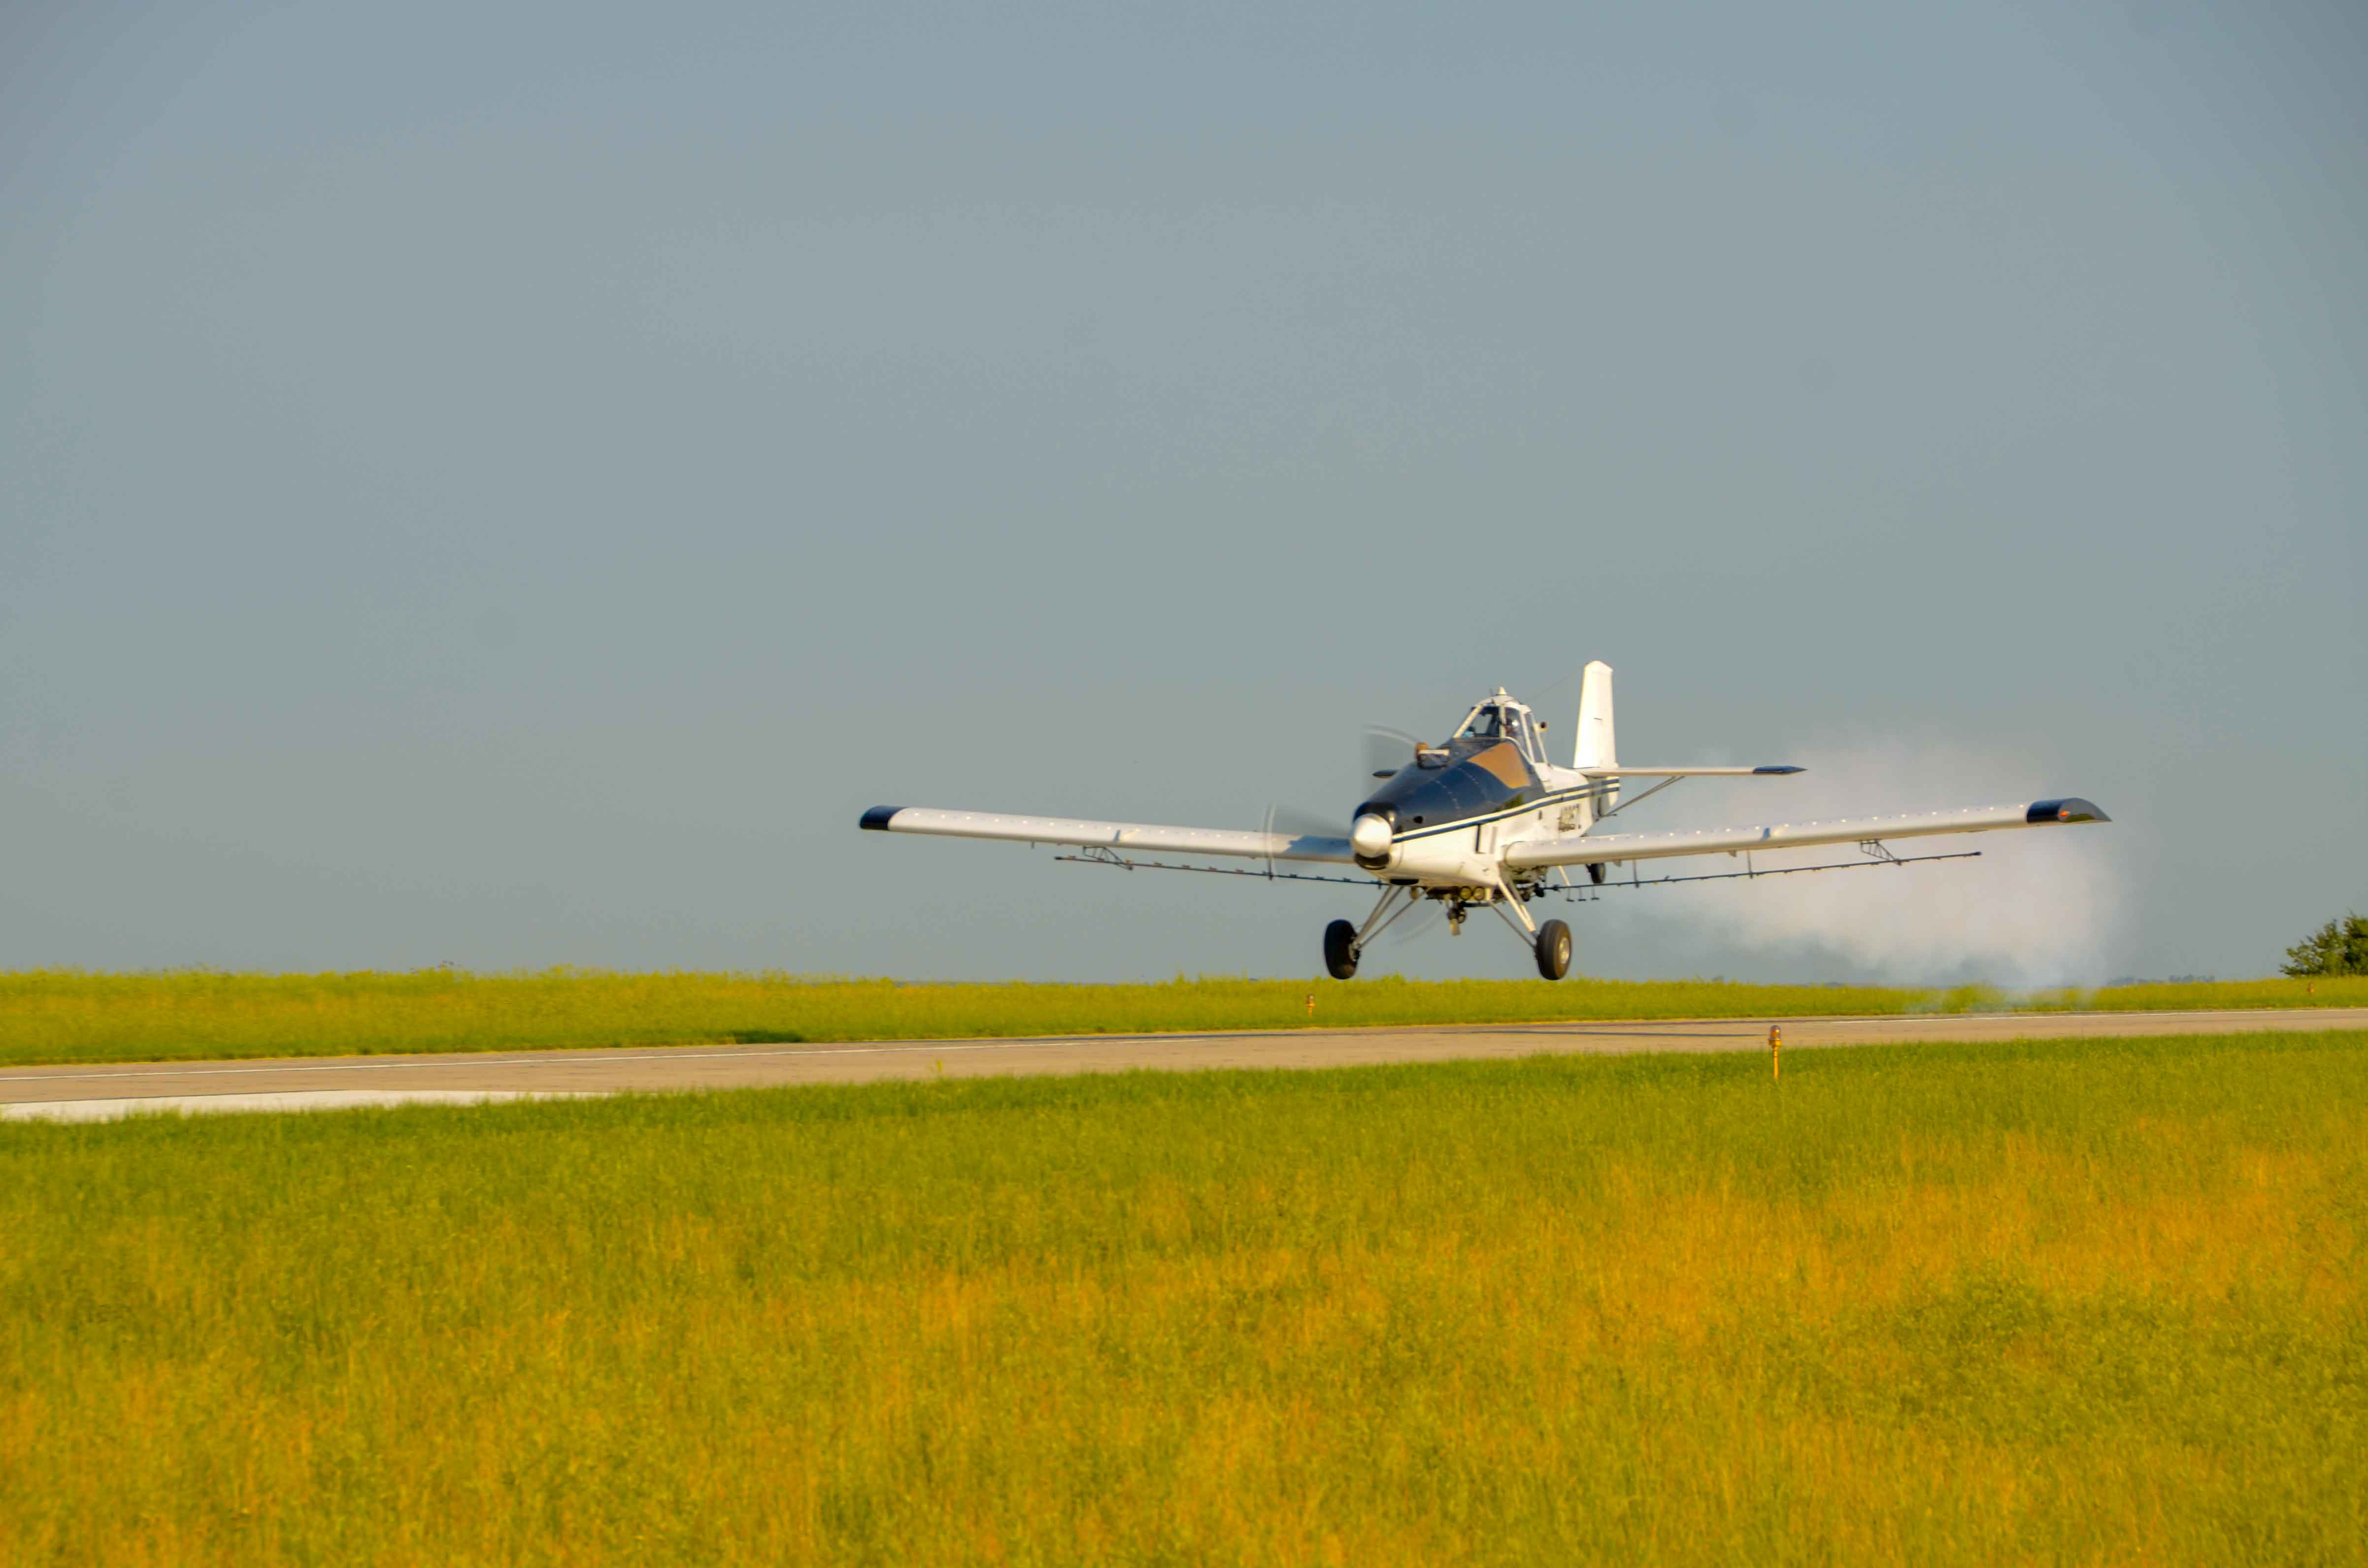 Crop Duster Sprays Holy Water Over Cow Island, Louisiana